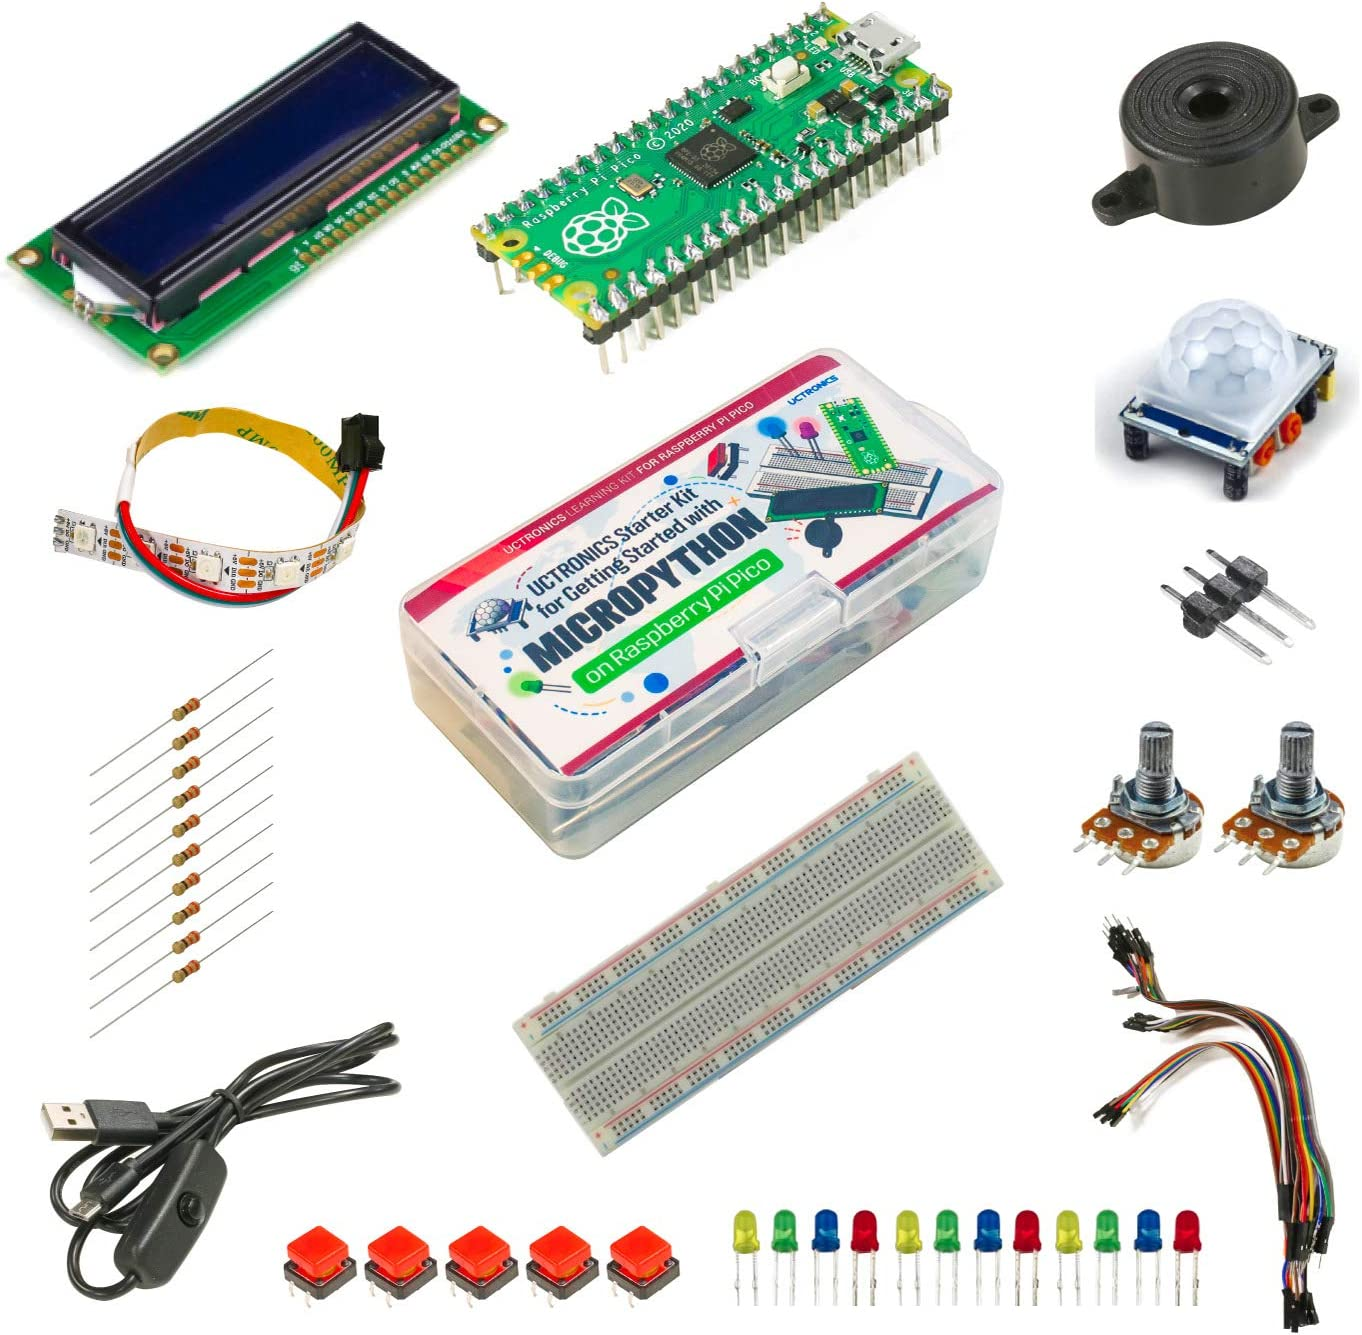 Beginner Friendly UCTRONICS Raspberry Pi Pico Starter Kit for Official Starter Book Pre-soldered Pico Get Started with MicroPython on Raspberry Pi Pico